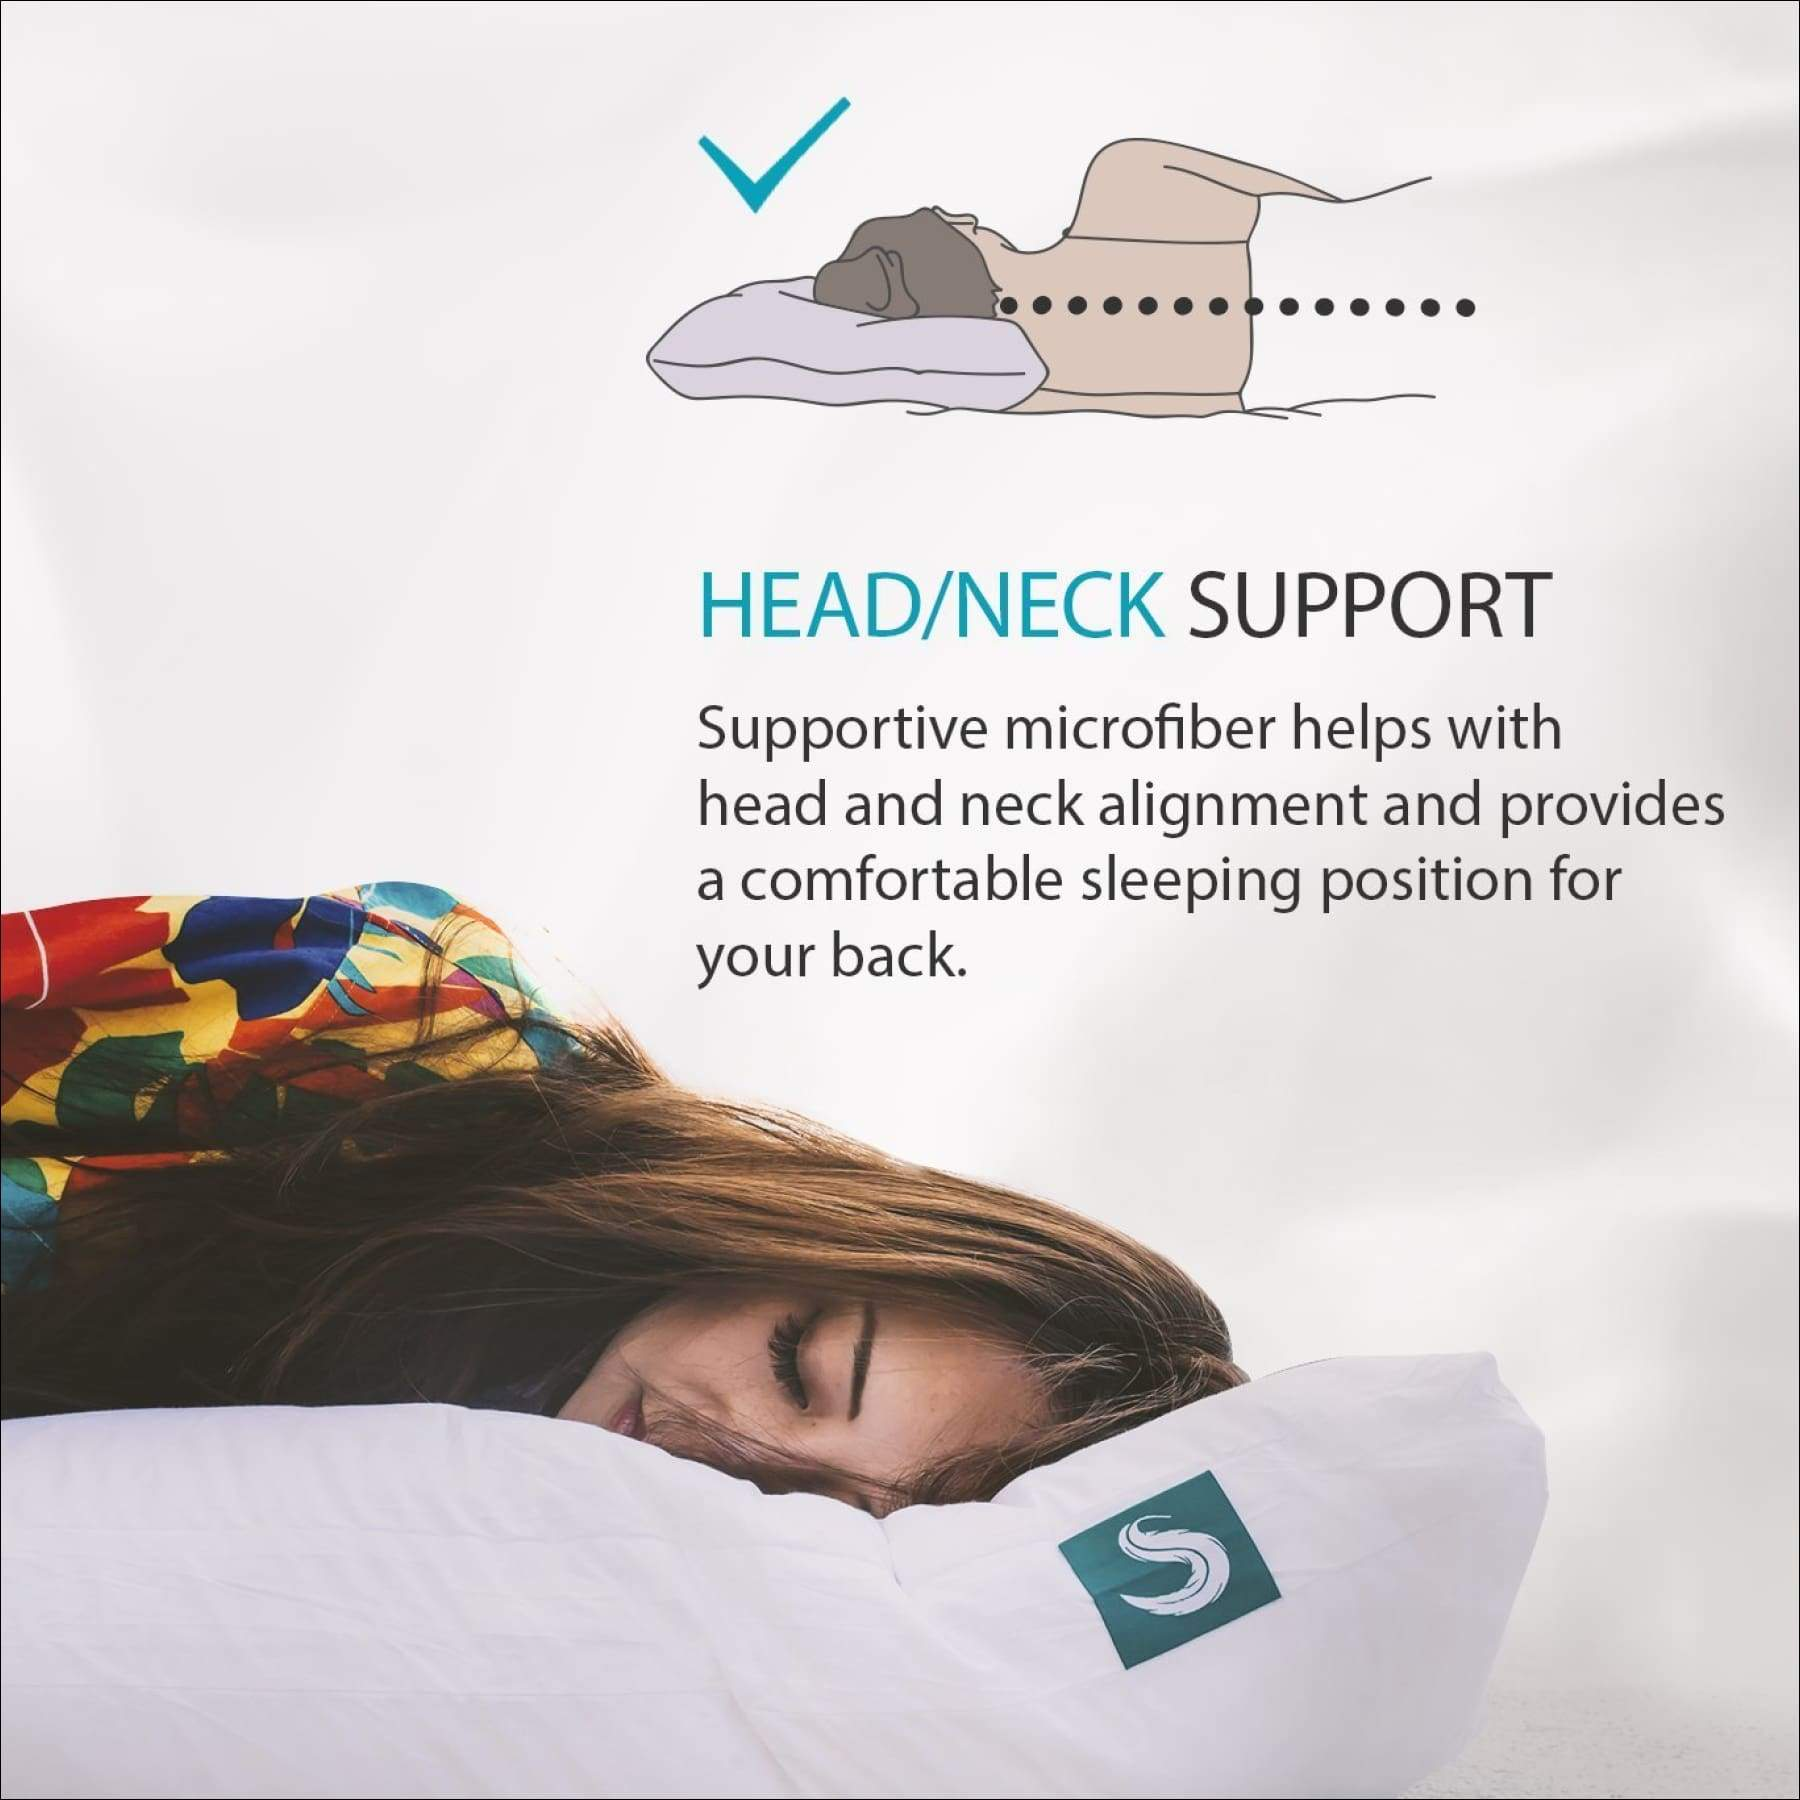 sleepgram pillow premium adjustable loft soft hypoallergenic microfiber pillow with washable removable cover 18 x 26 standard queen size